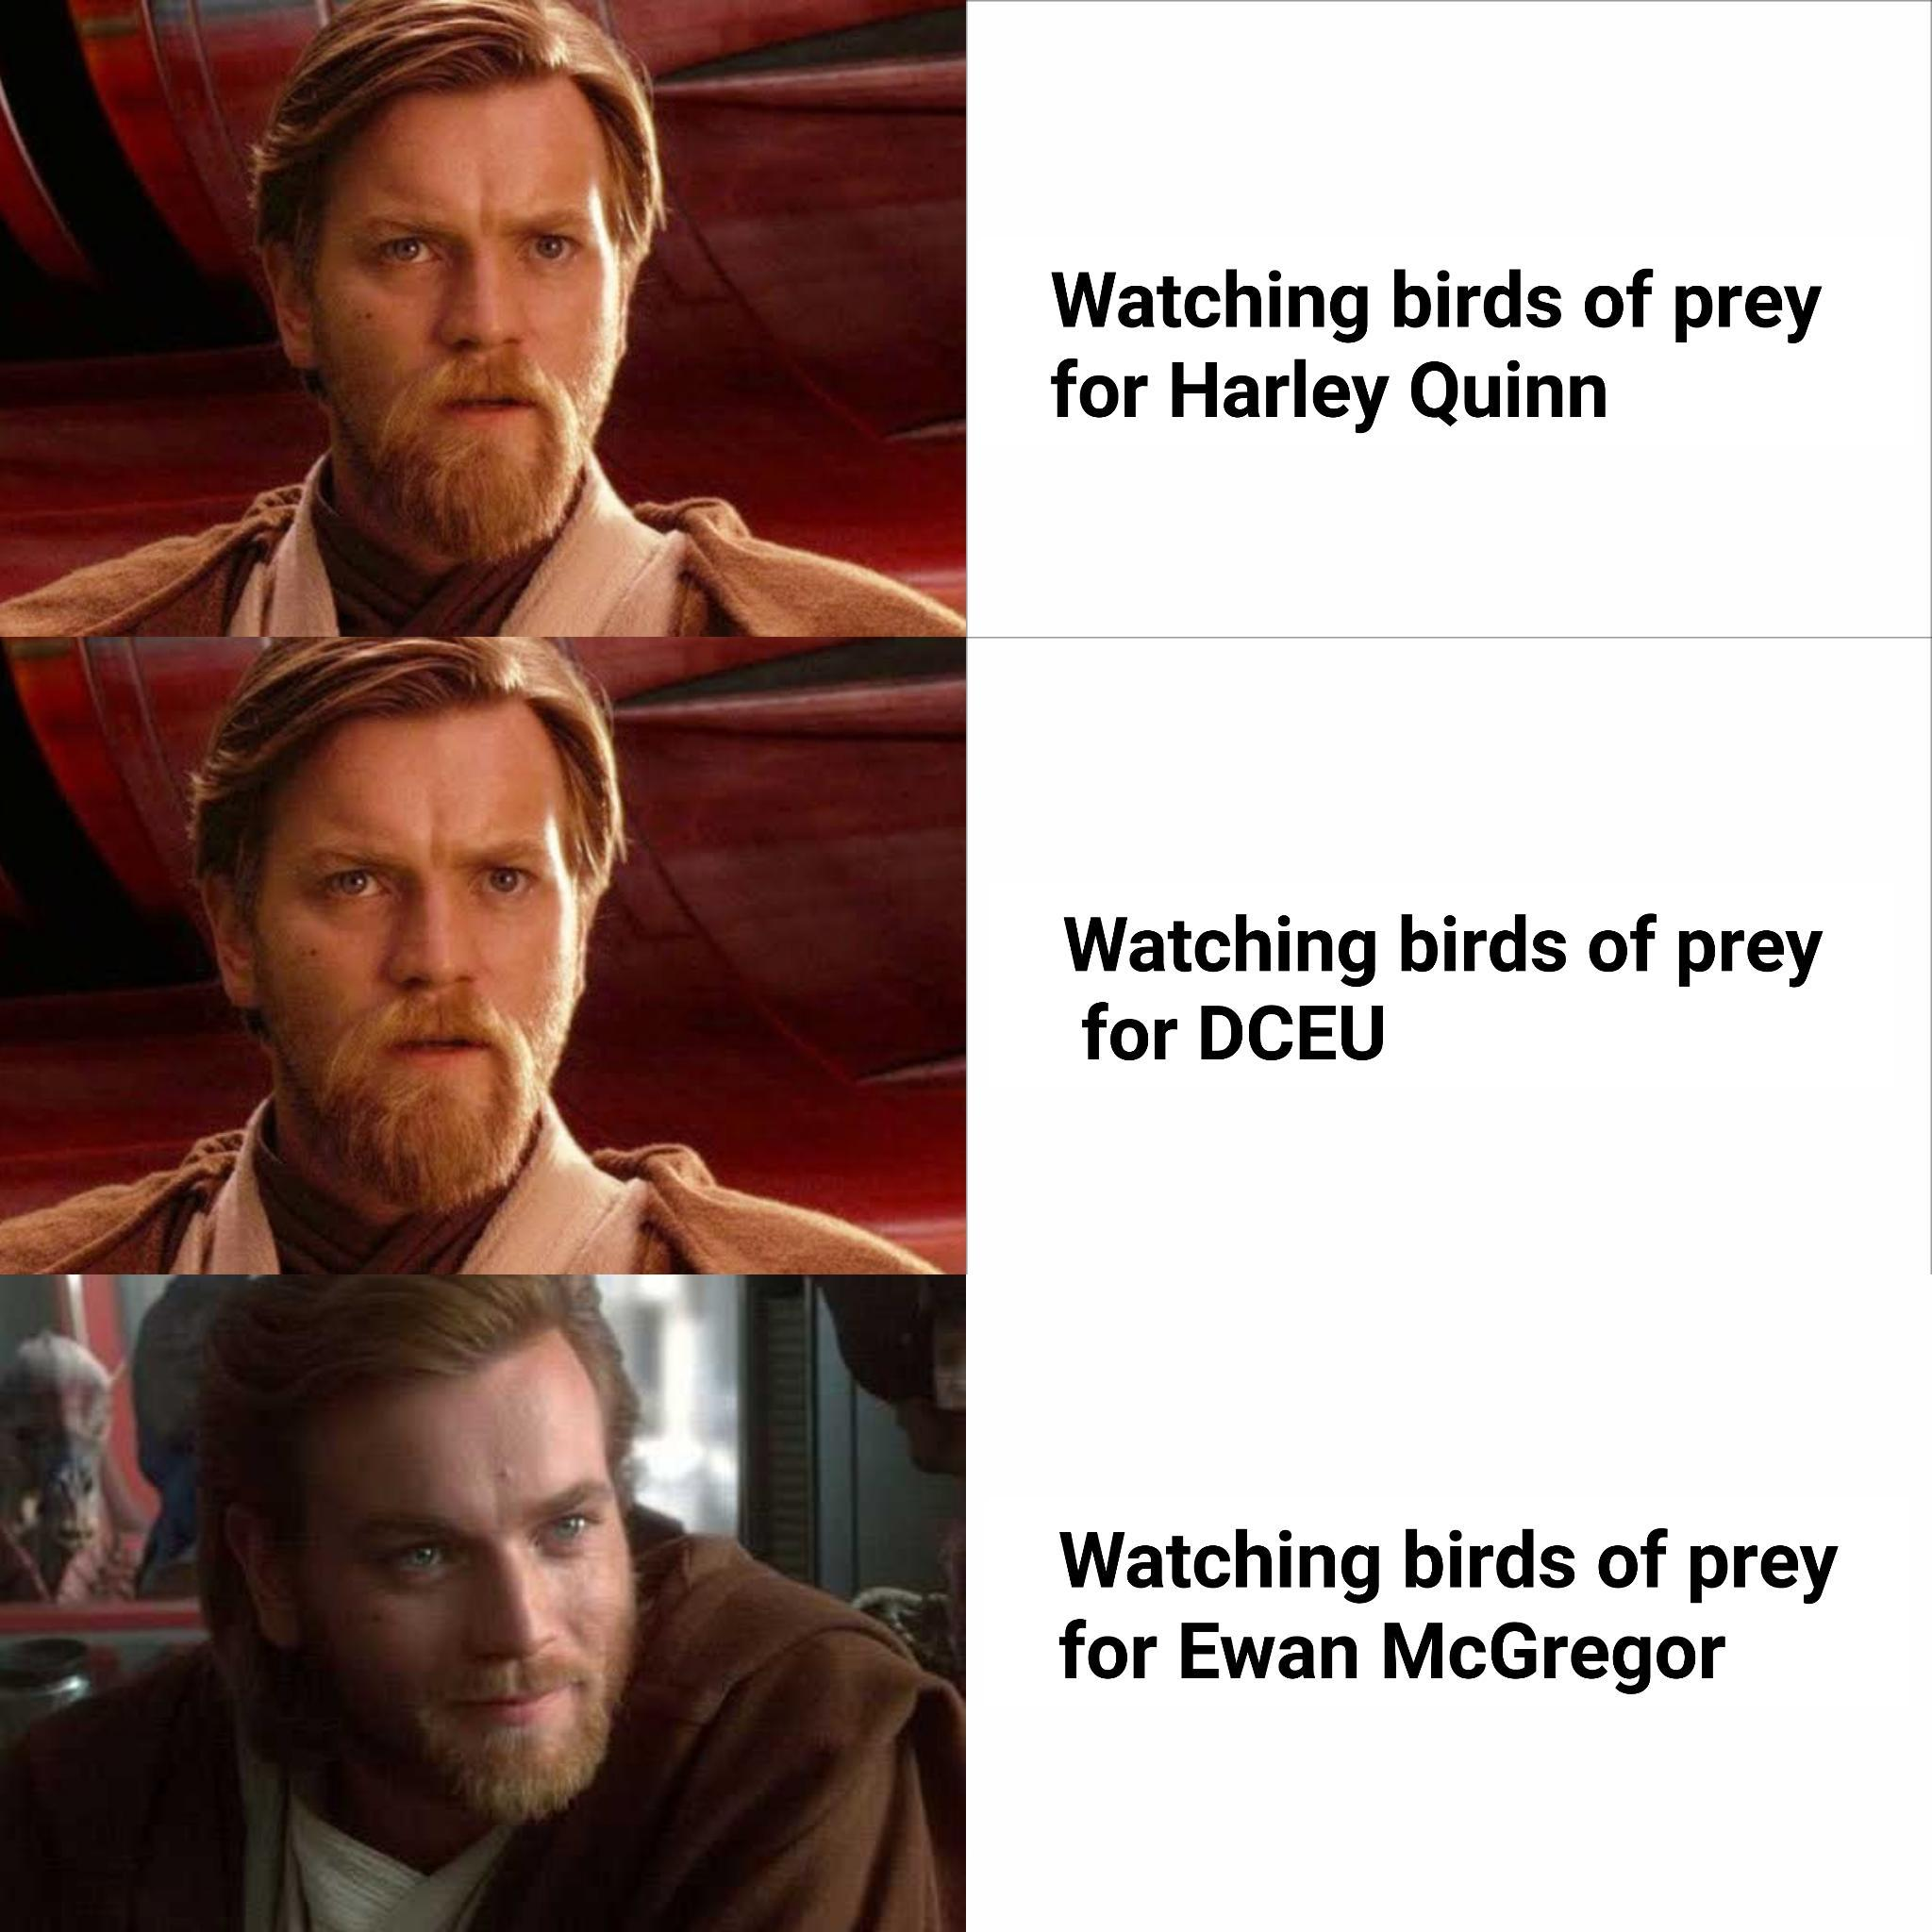 Imagine Ewan Saying Hello There In That Movie R Prequelmemes Prequel Memes Know Your Meme